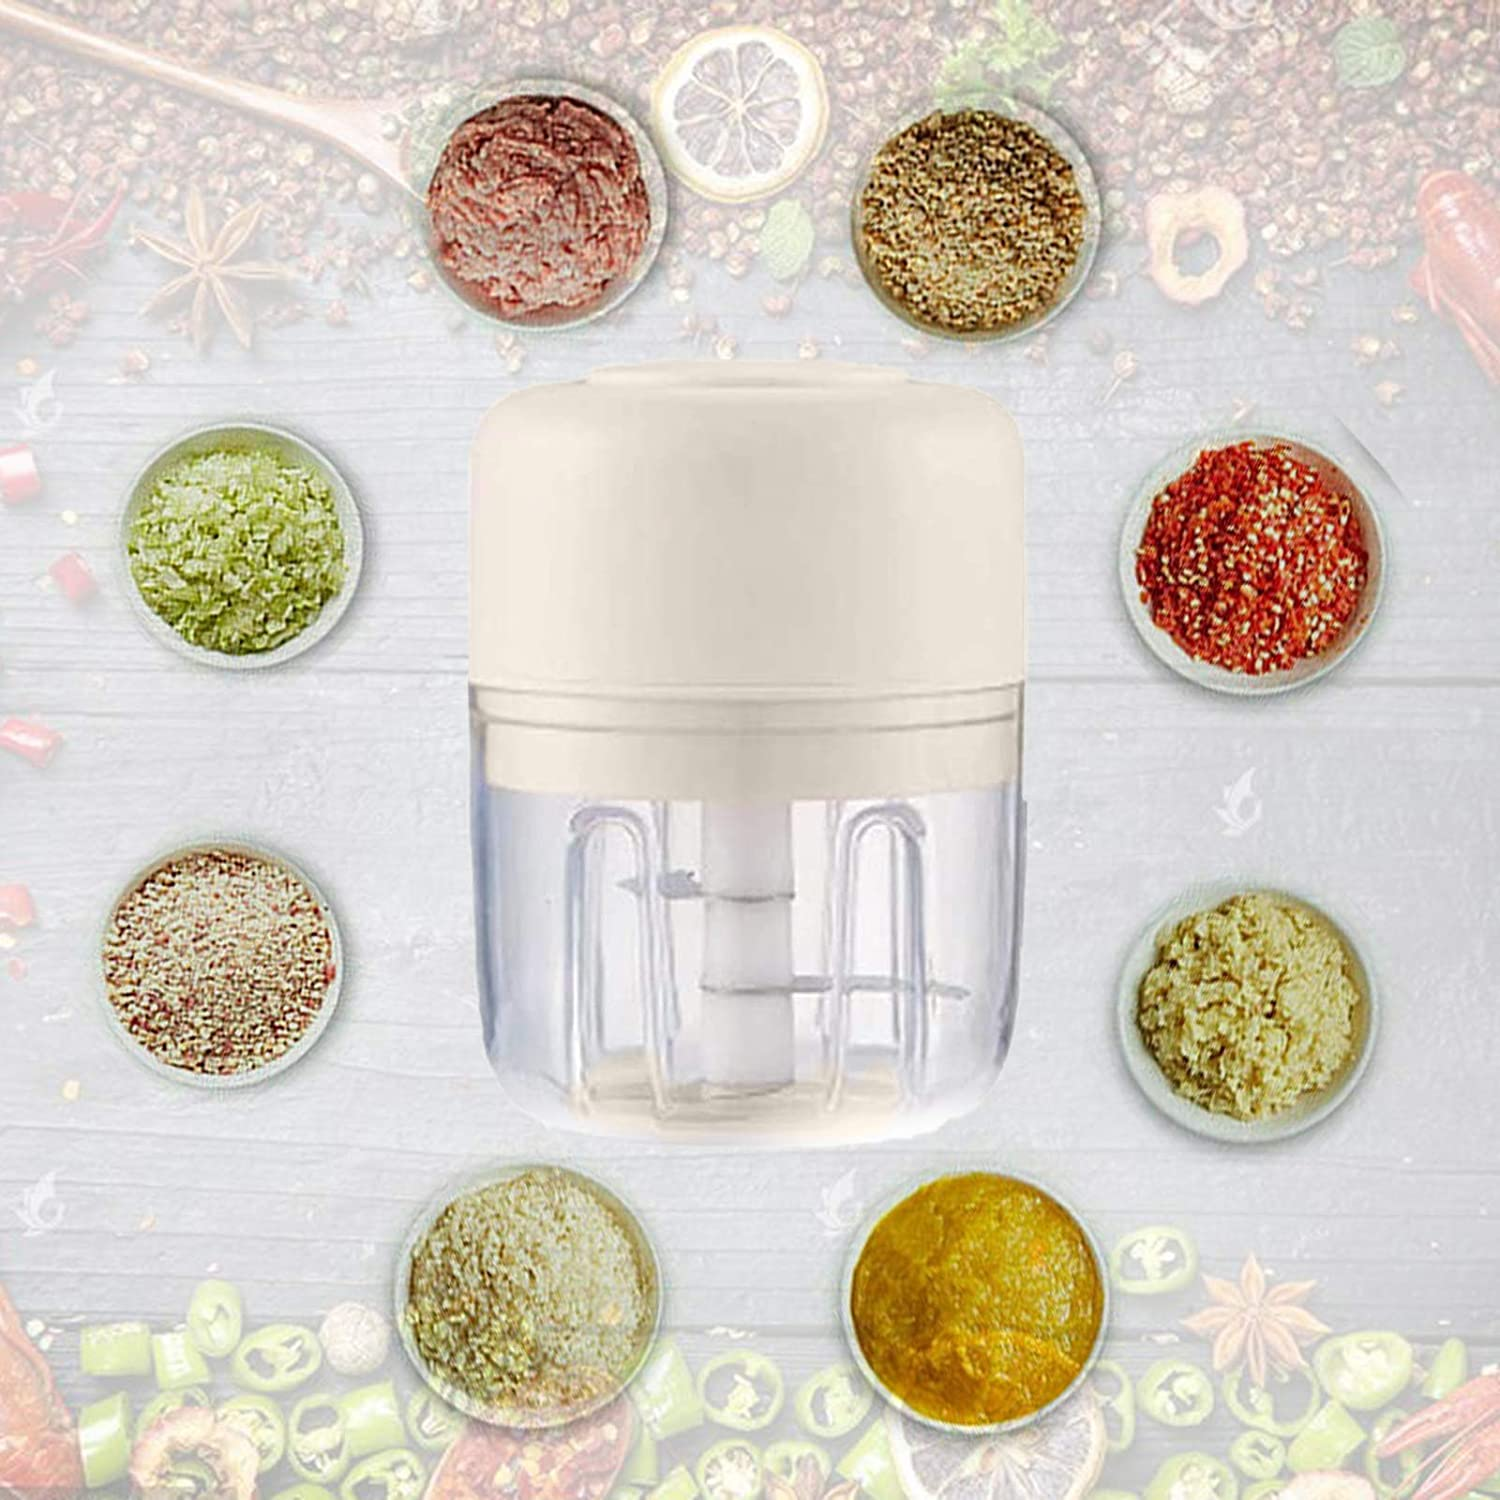 Mini Electric Food Garlic Chopper Compact Rechargeable Electric Mini Food Processor Vegetable Grinder Blender Crusher Press for Meat Fruit Onion Multi-function Processor